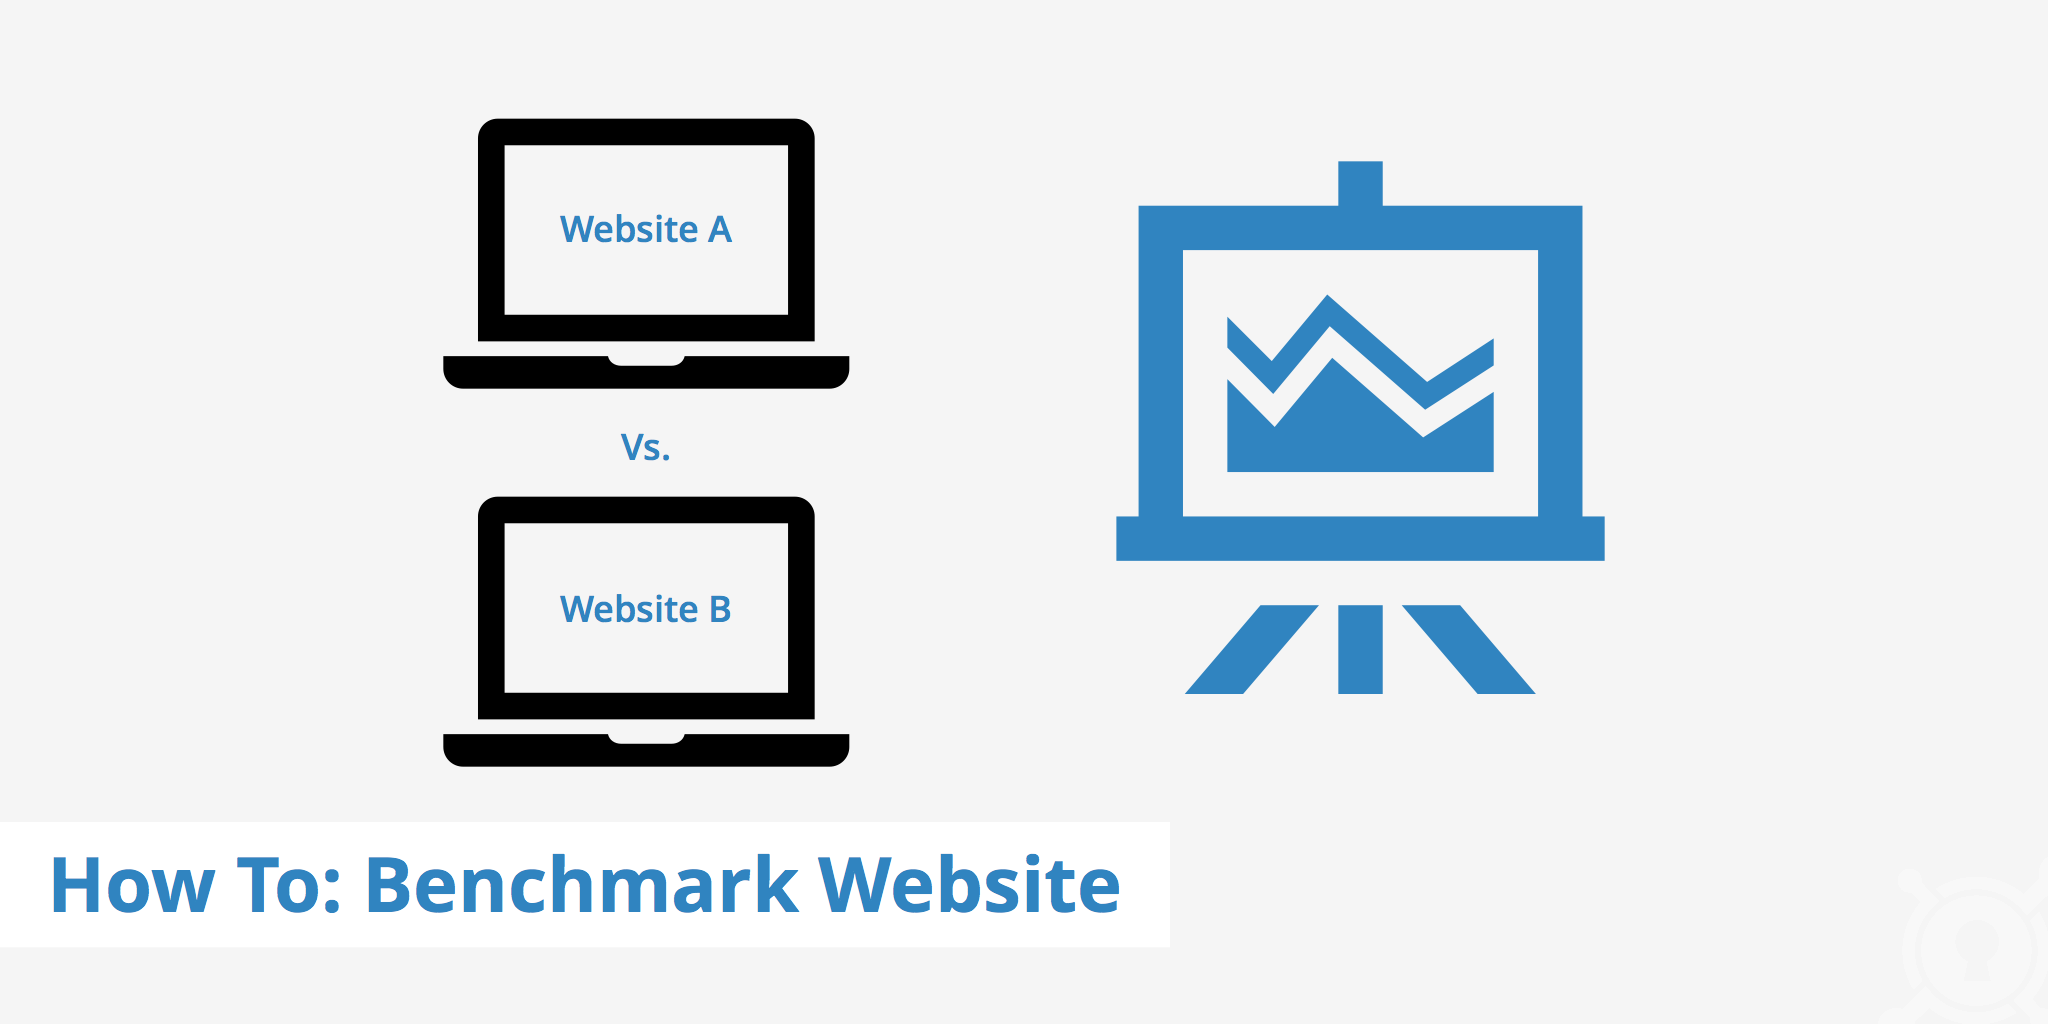 How To: Benchmark Website